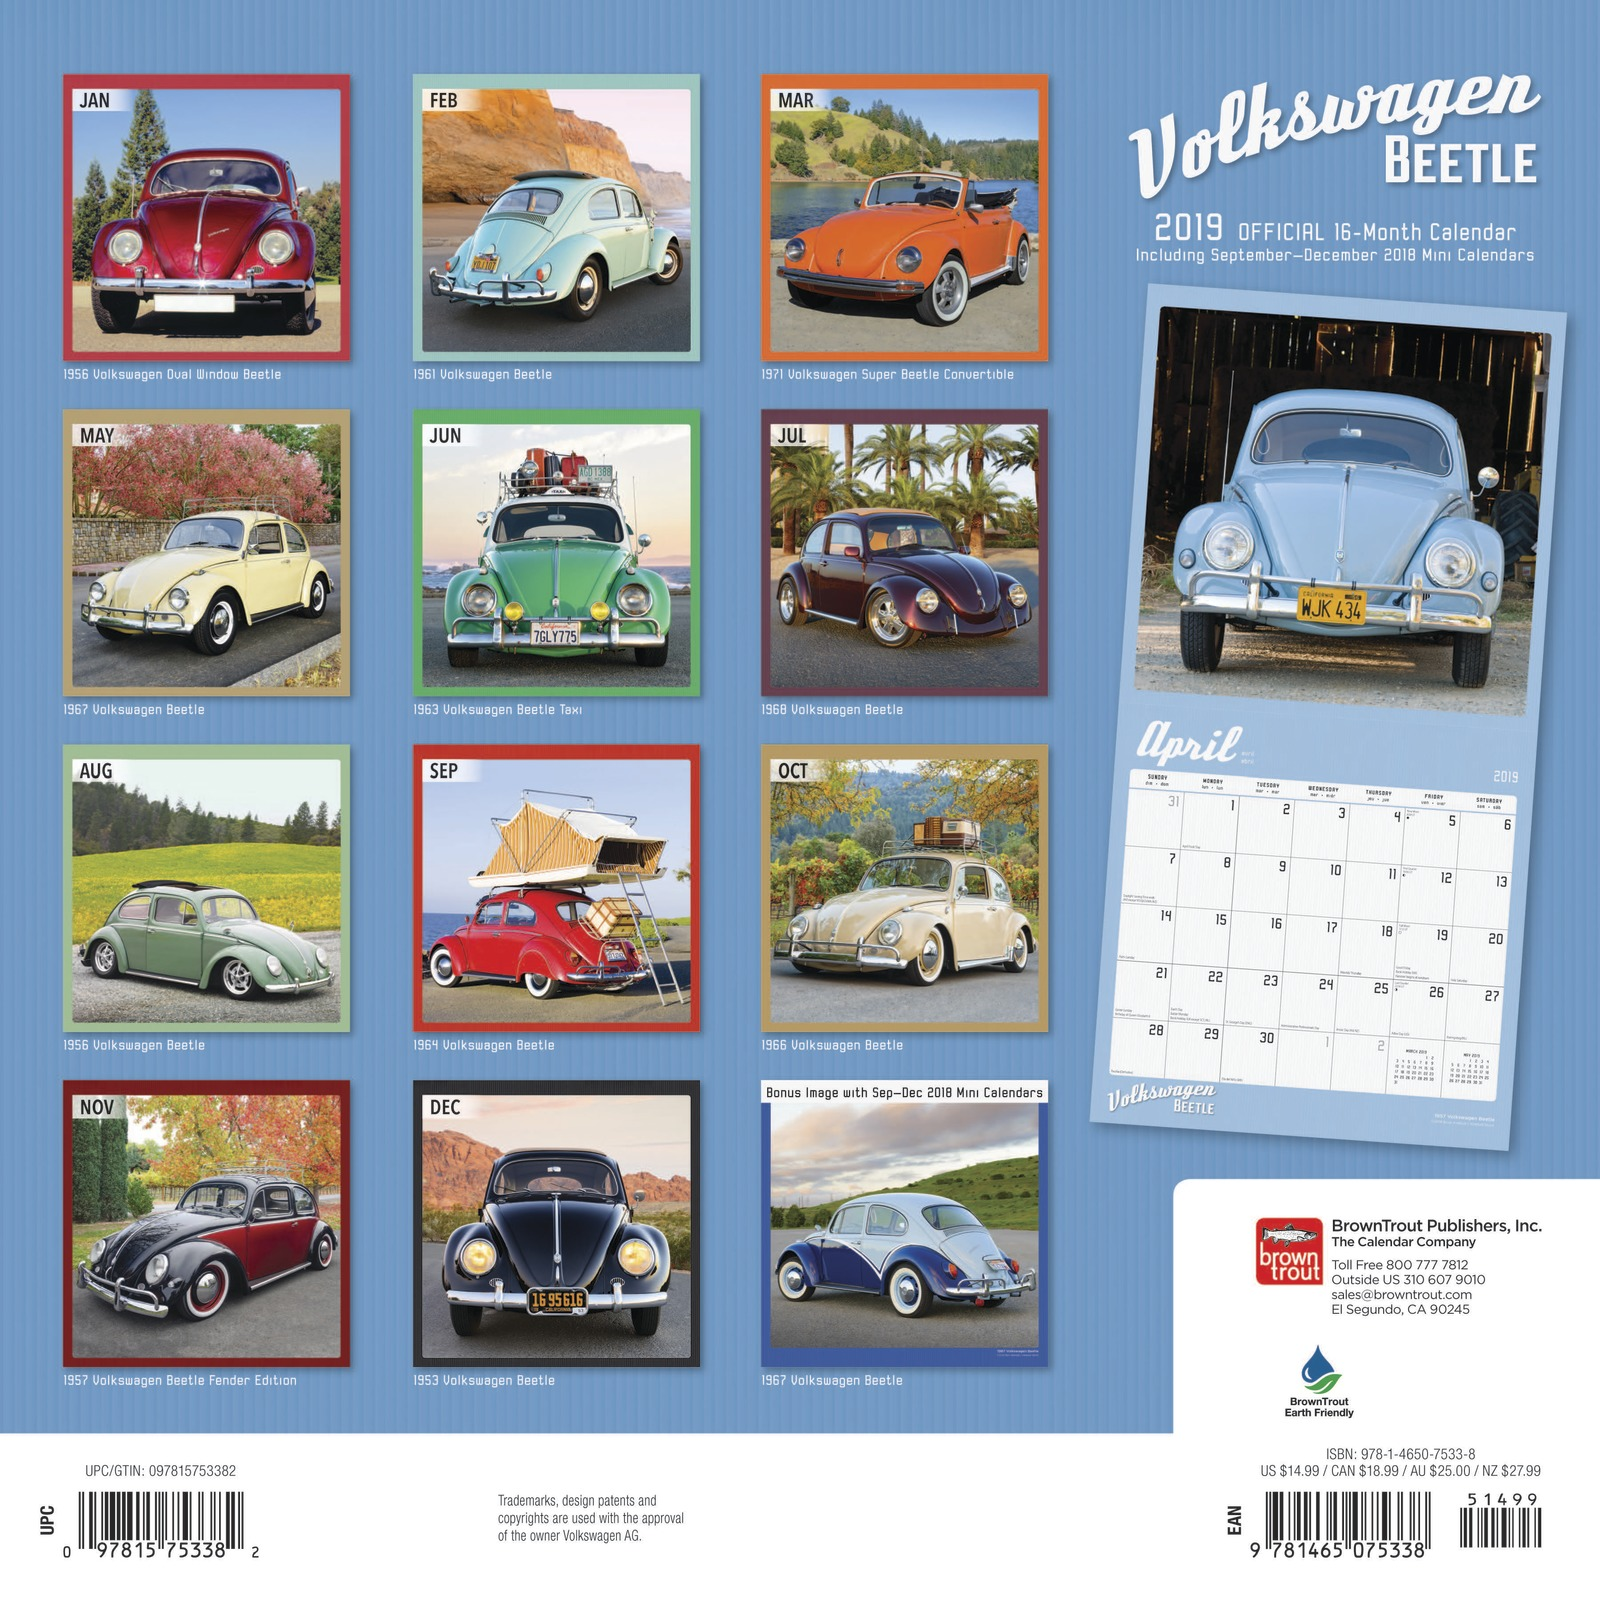 Volkswagen Beetle 2019 Square Wall Calendar by Inc Browntrout Publishers image